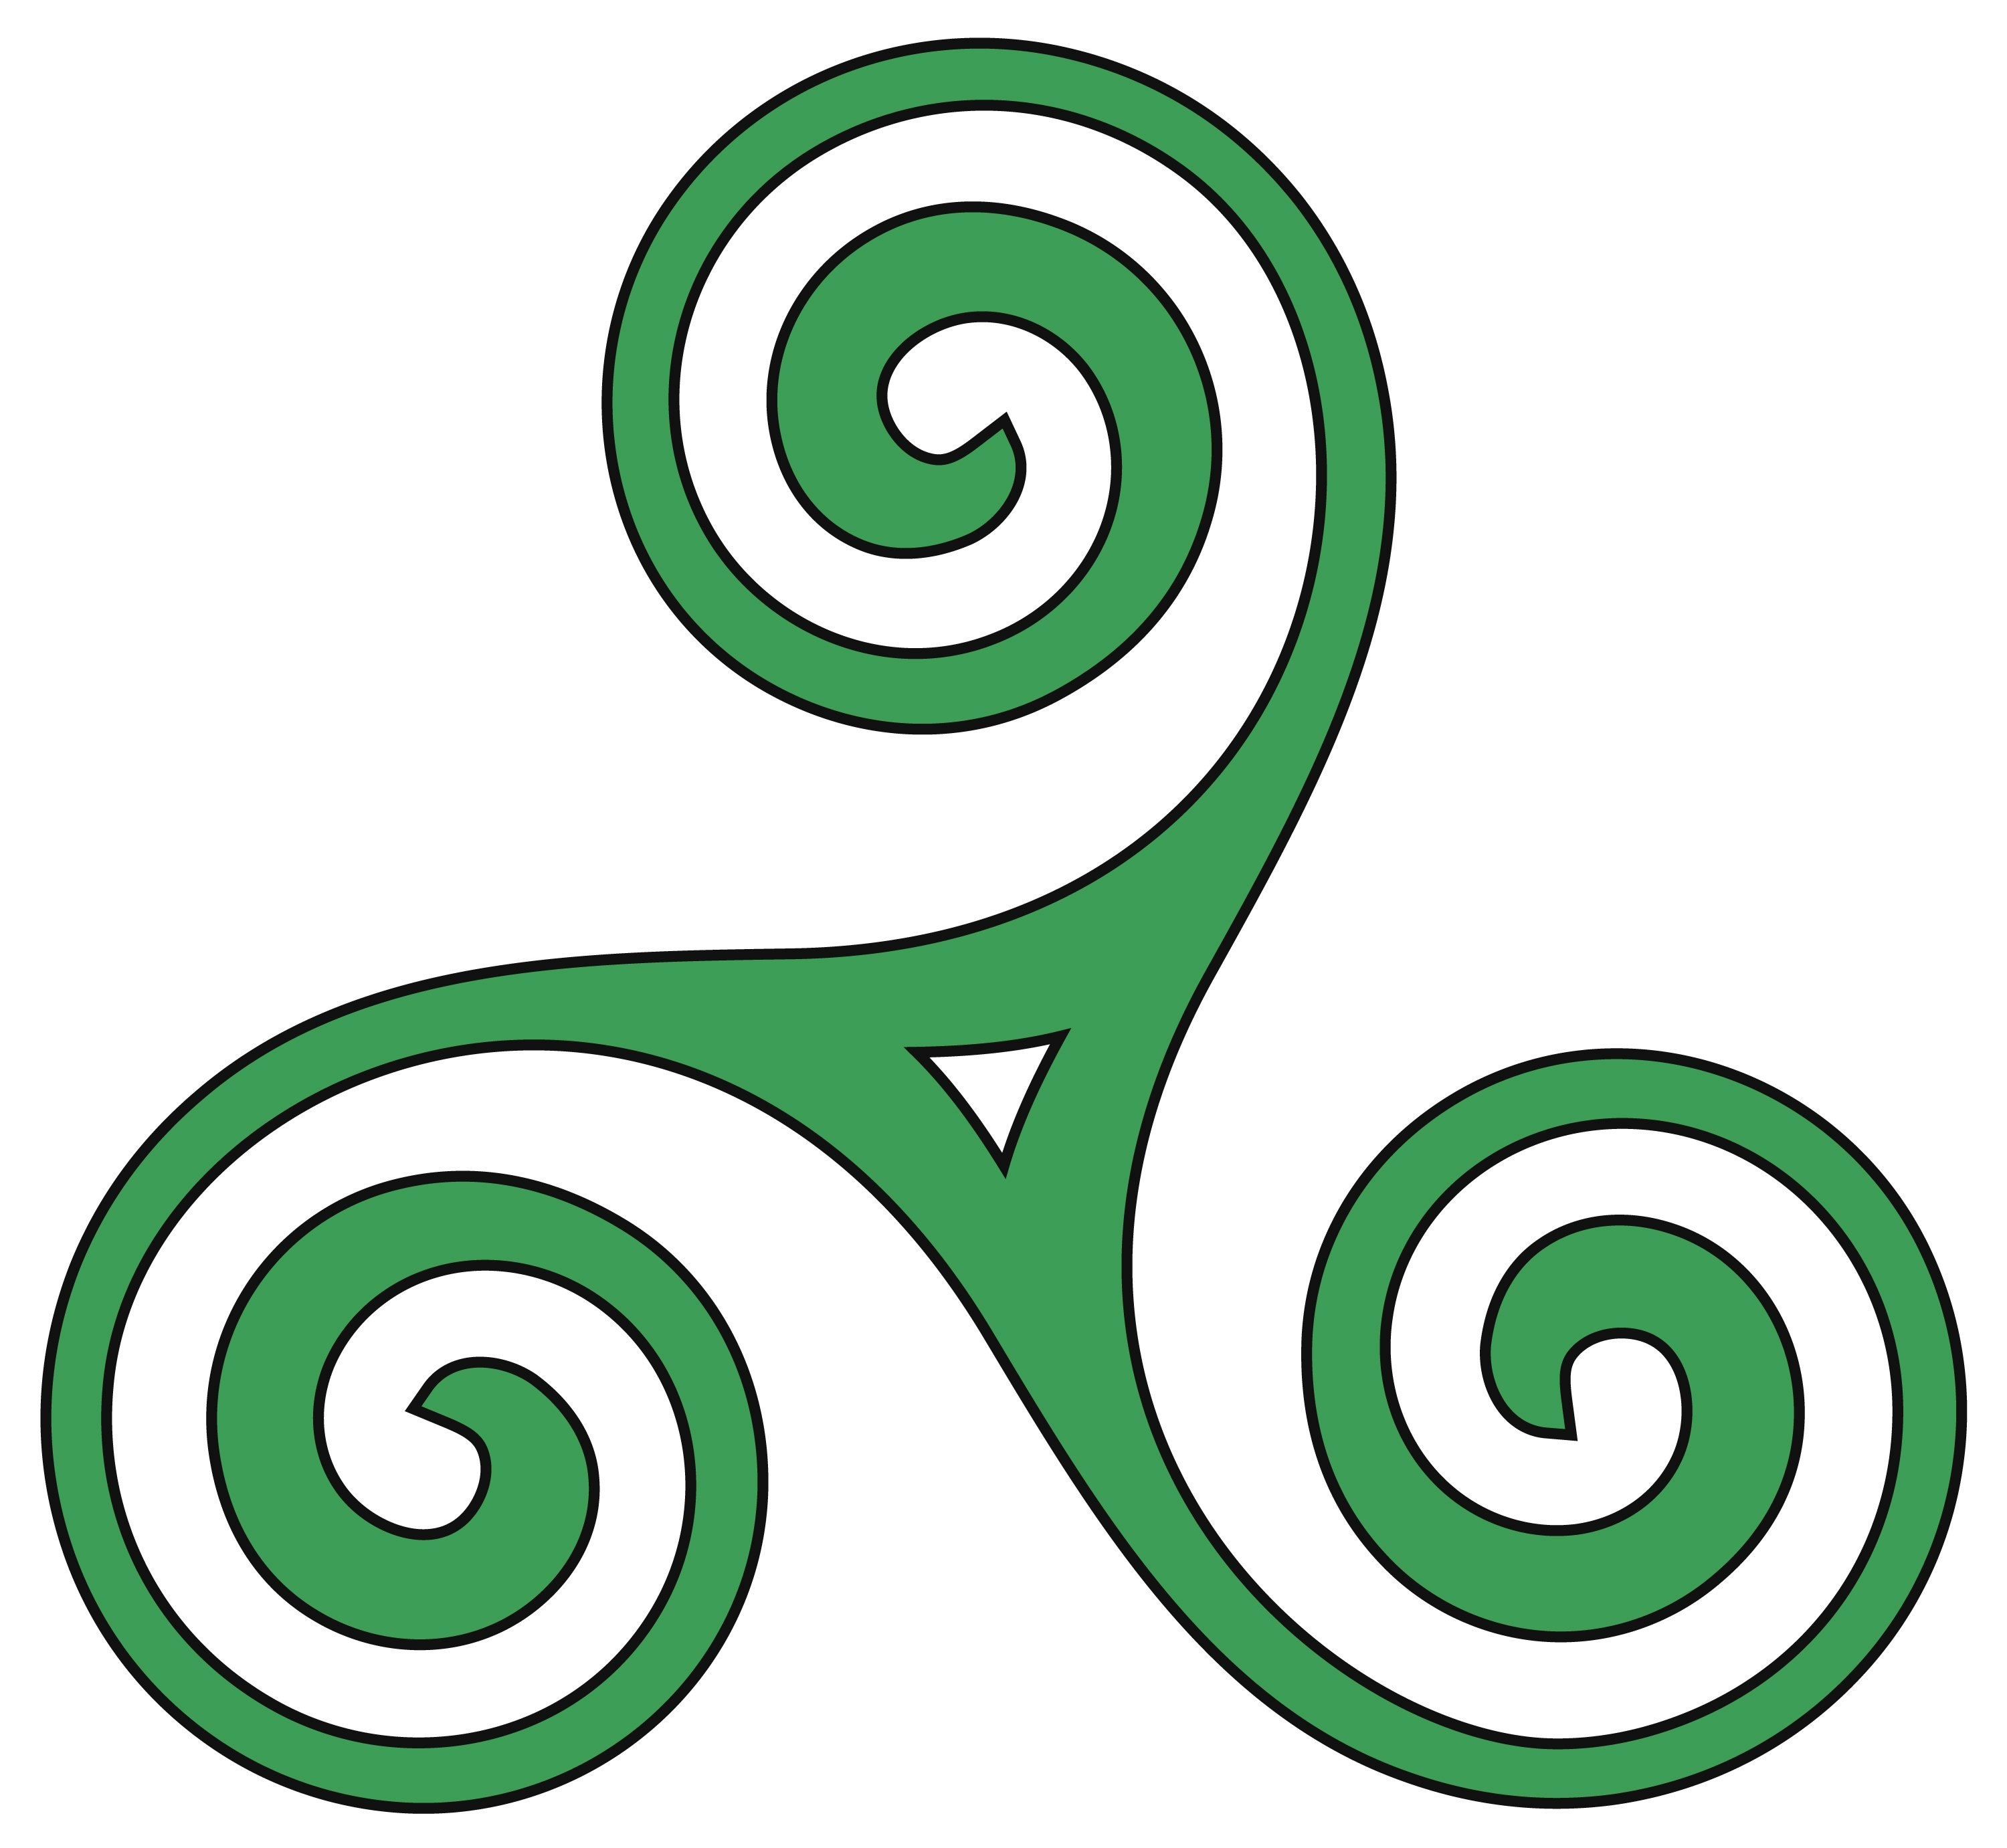 Celtic Symbols and Their Meanings - Mythologian